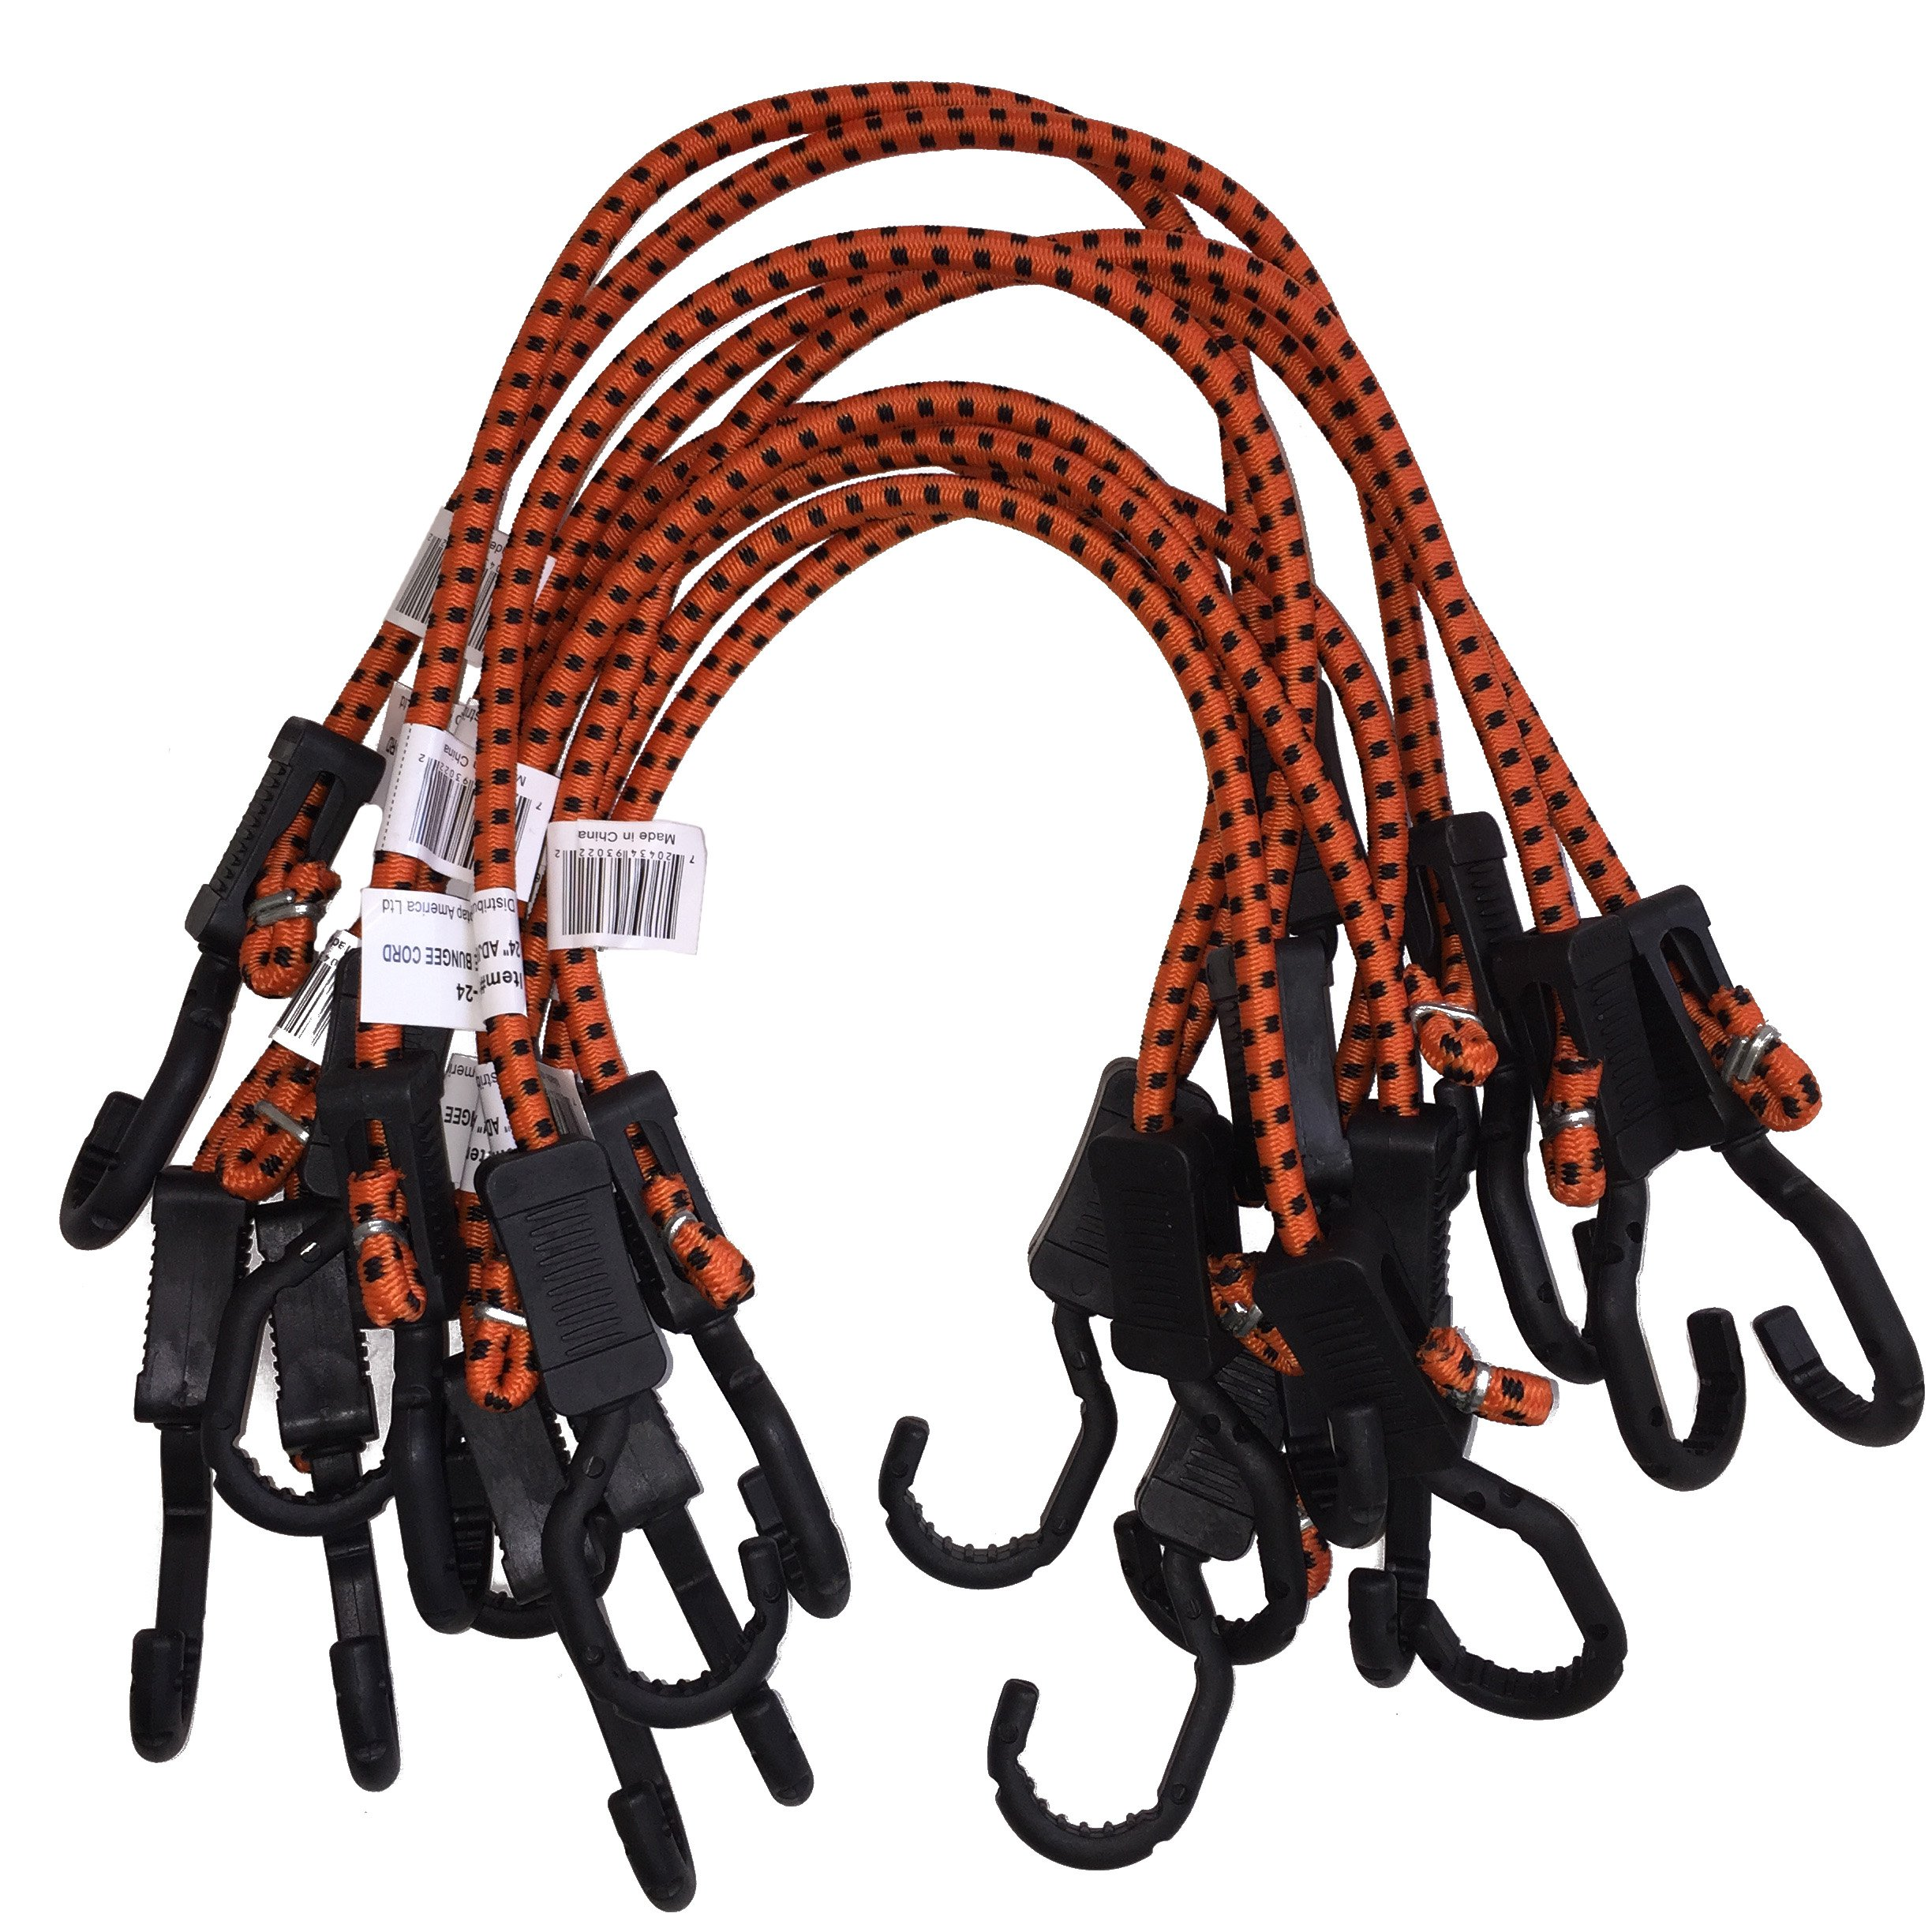 Kotap Adjustable 24-Inch Bungee Cords, 10-Piece, Item: MABC-24 by Kotap